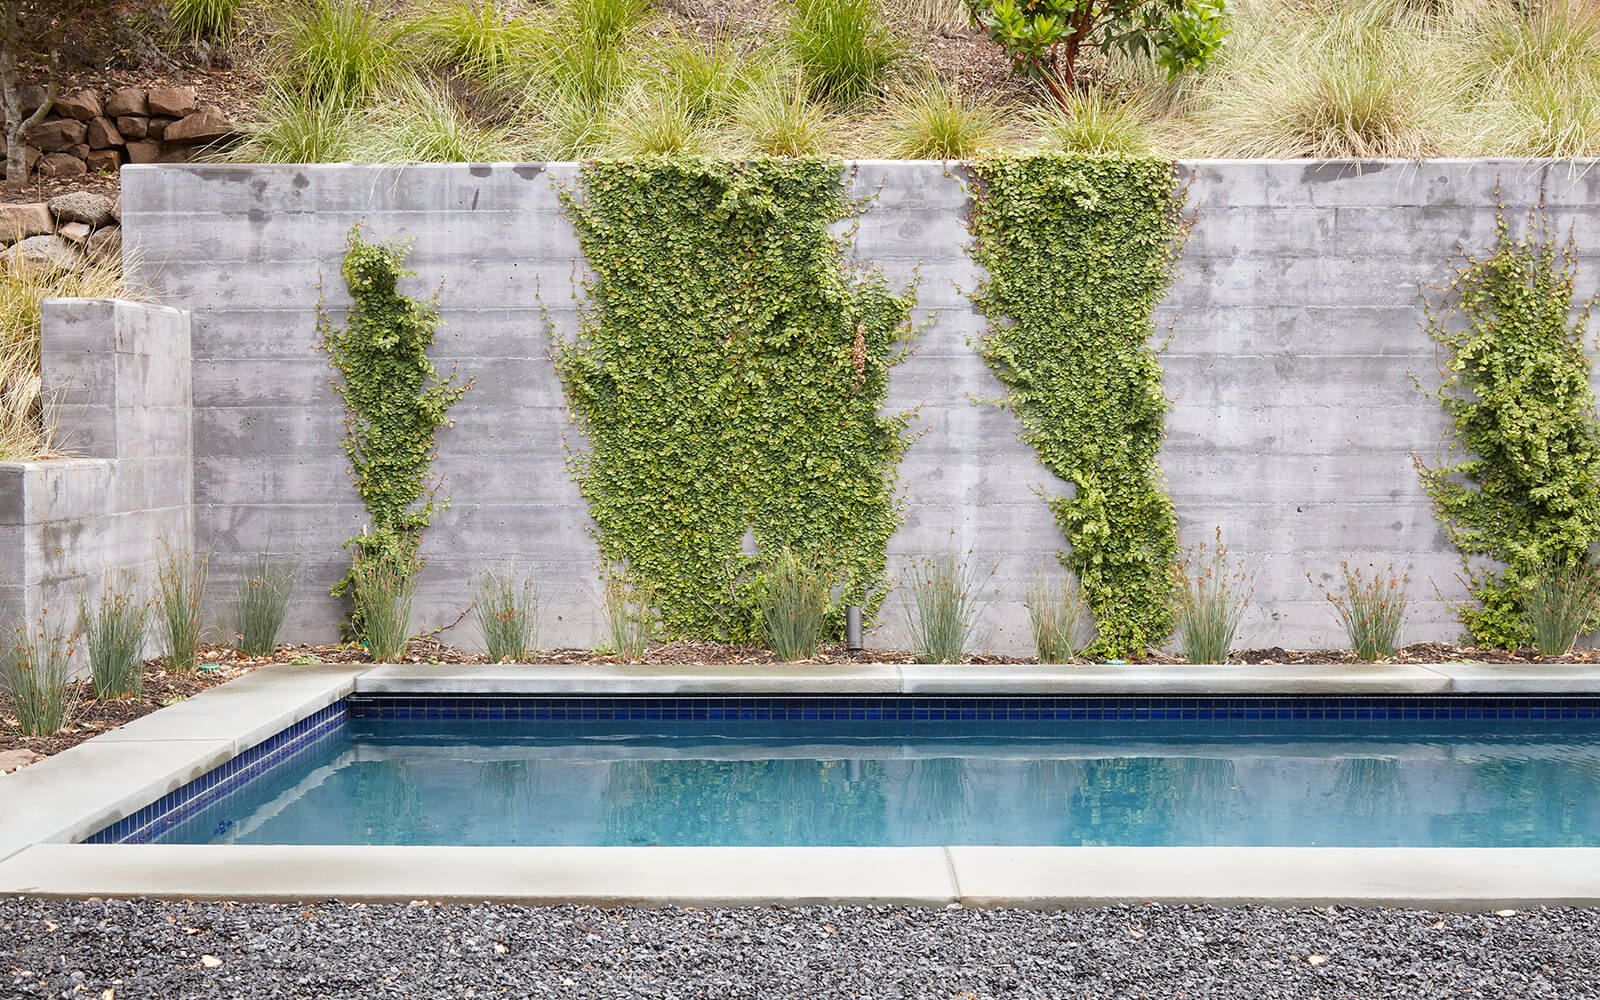 studio vara residential Kentfield pool plants